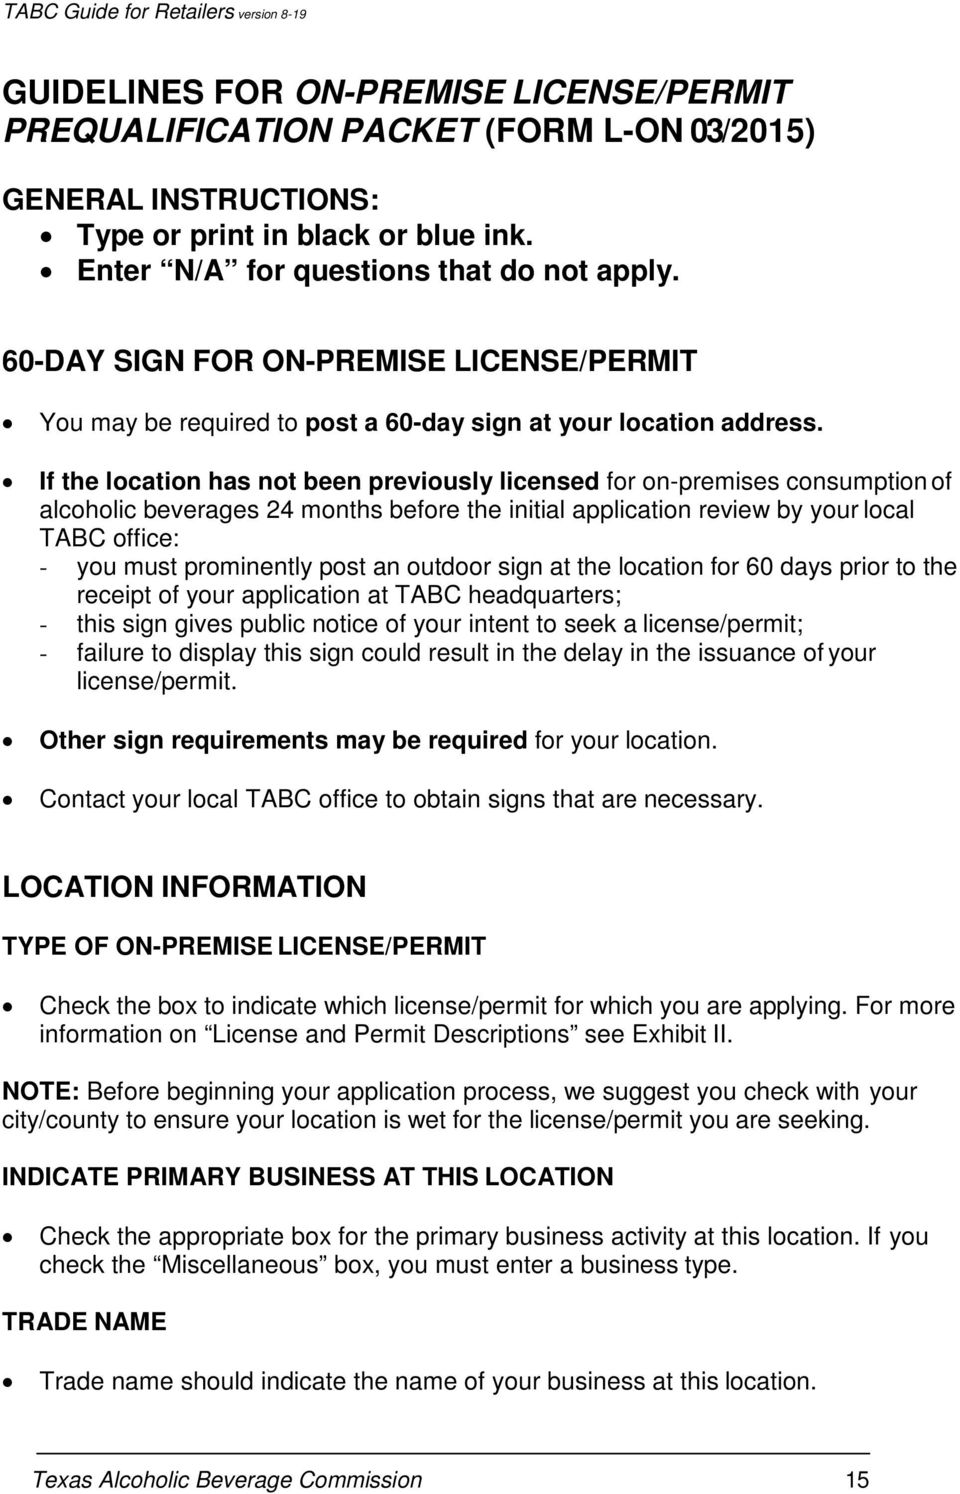 If the location has not been previously licensed for on-premises consumption of alcoholic beverages 24 months before the initial application review by your local TABC office: - you must prominently